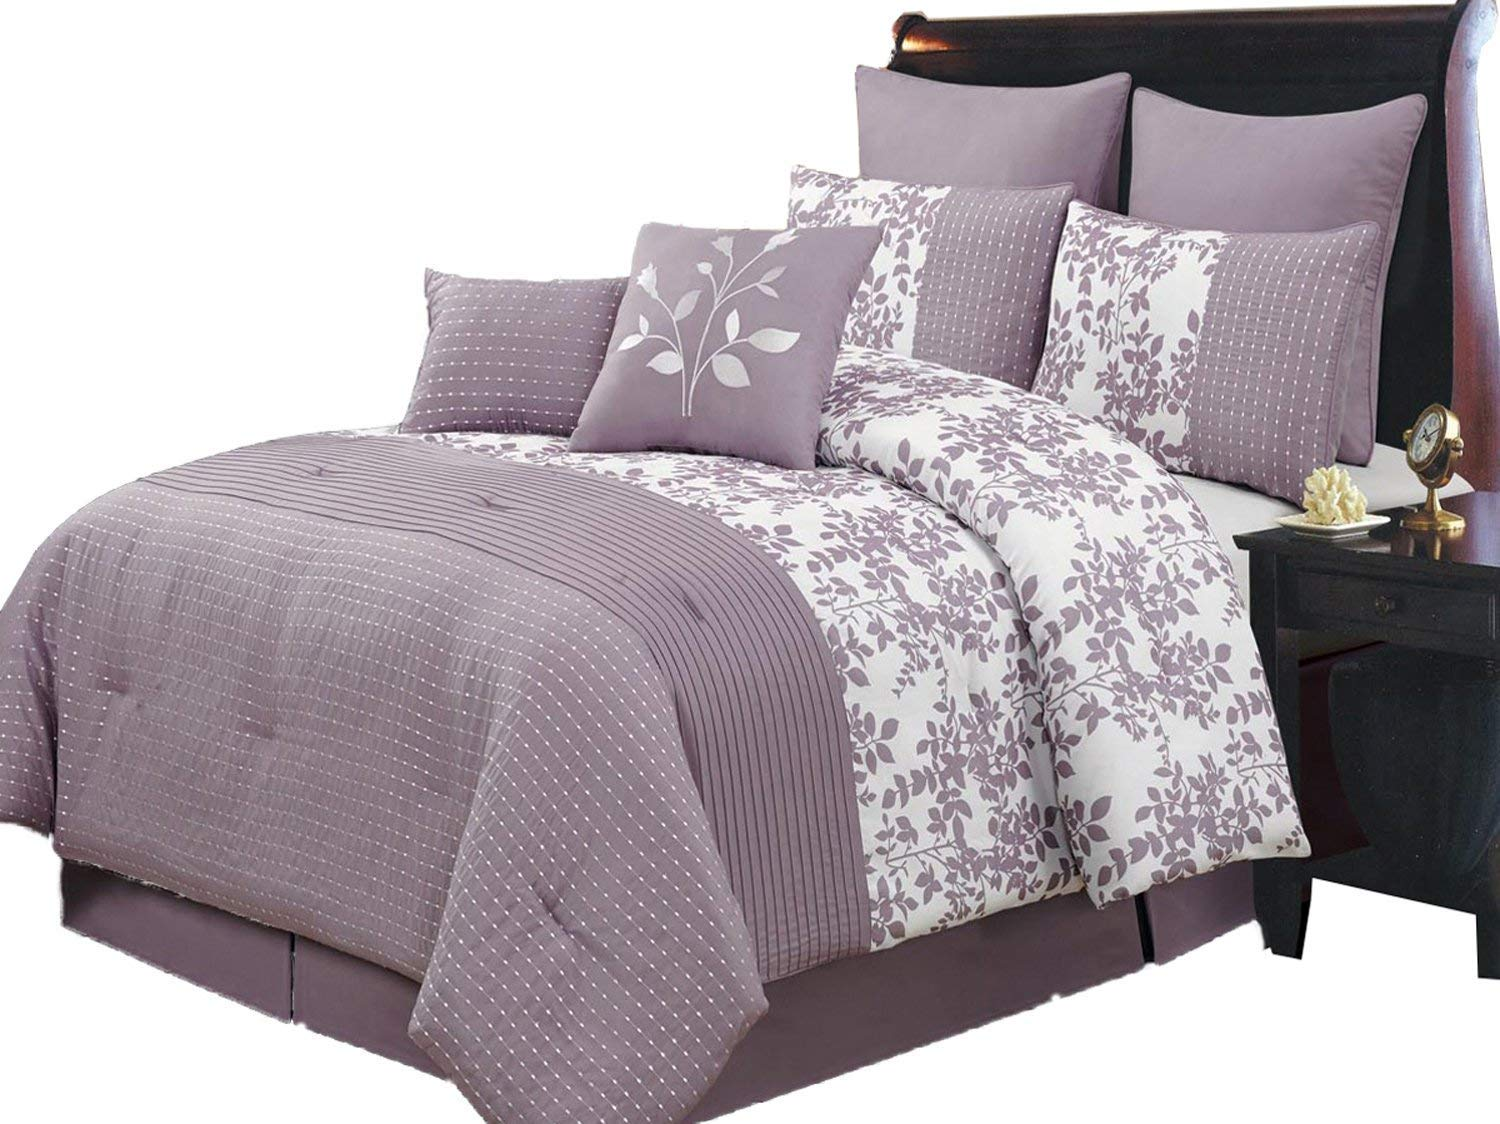 Royal Hotel Bliss Purple and White Queen Size Luxury 8 Piece Comforter Set Includes Comforter, Bed Skirt, Pillow Shams, Decorative Pillows